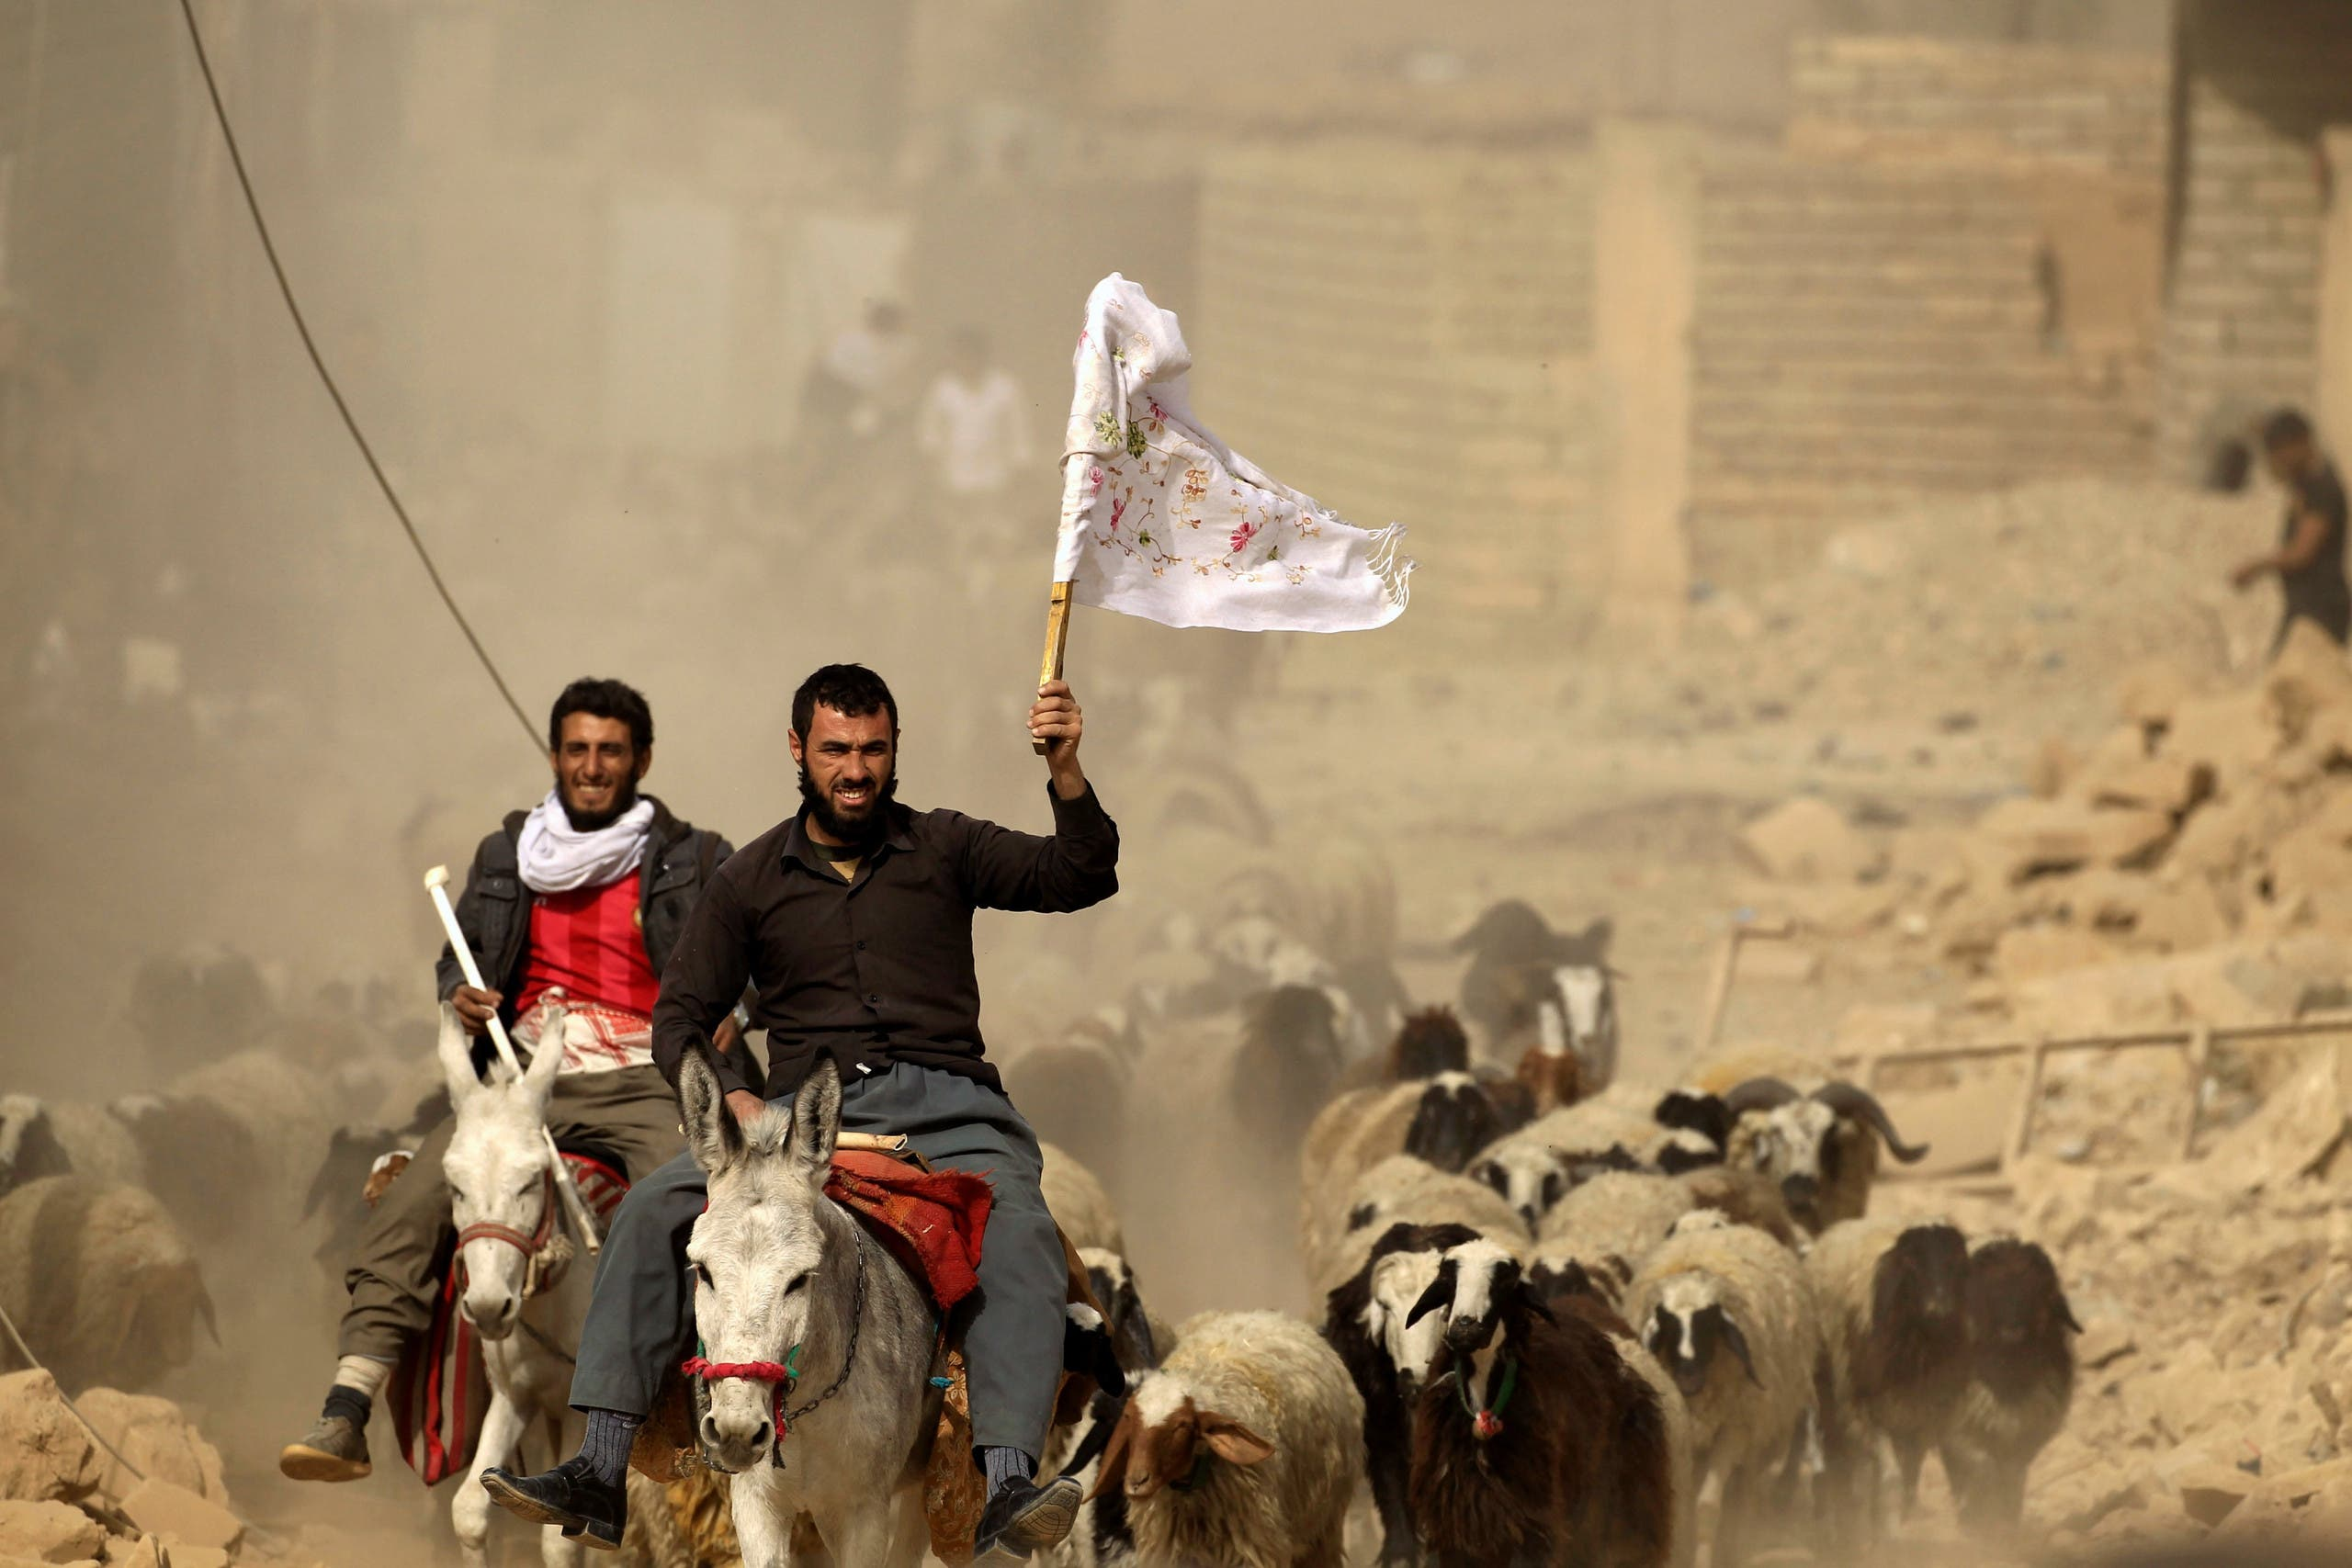 Civilians raise white flags as Mosul operation continues